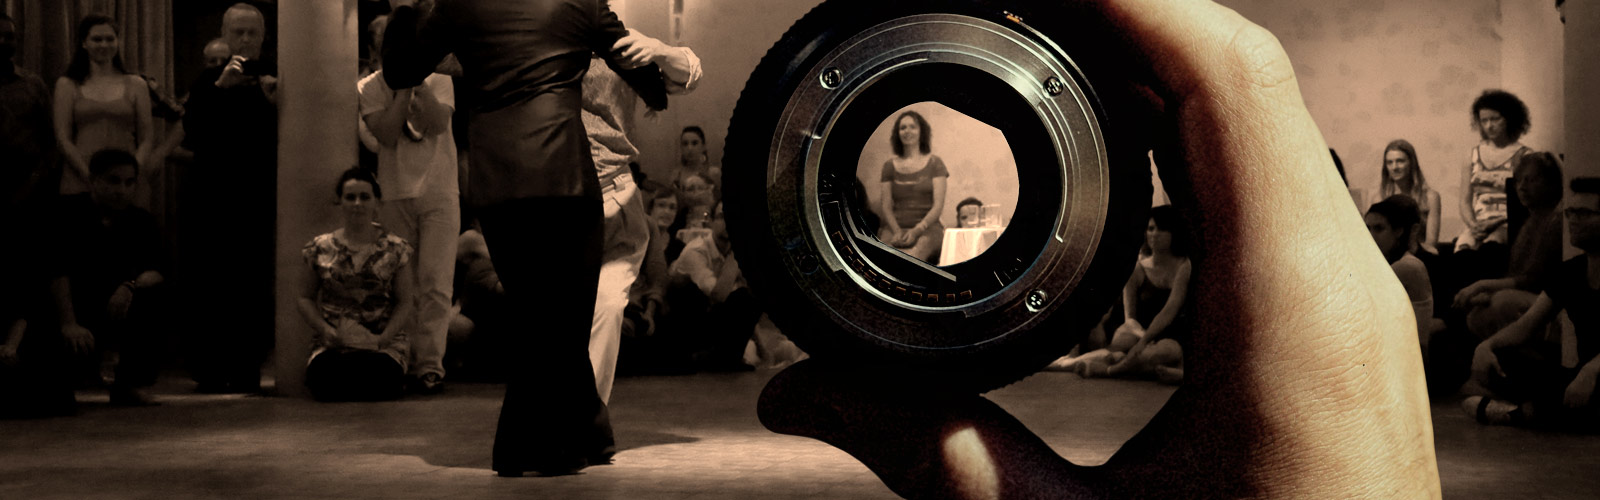 SHOOT! The Spirit of Tango Photography Competition